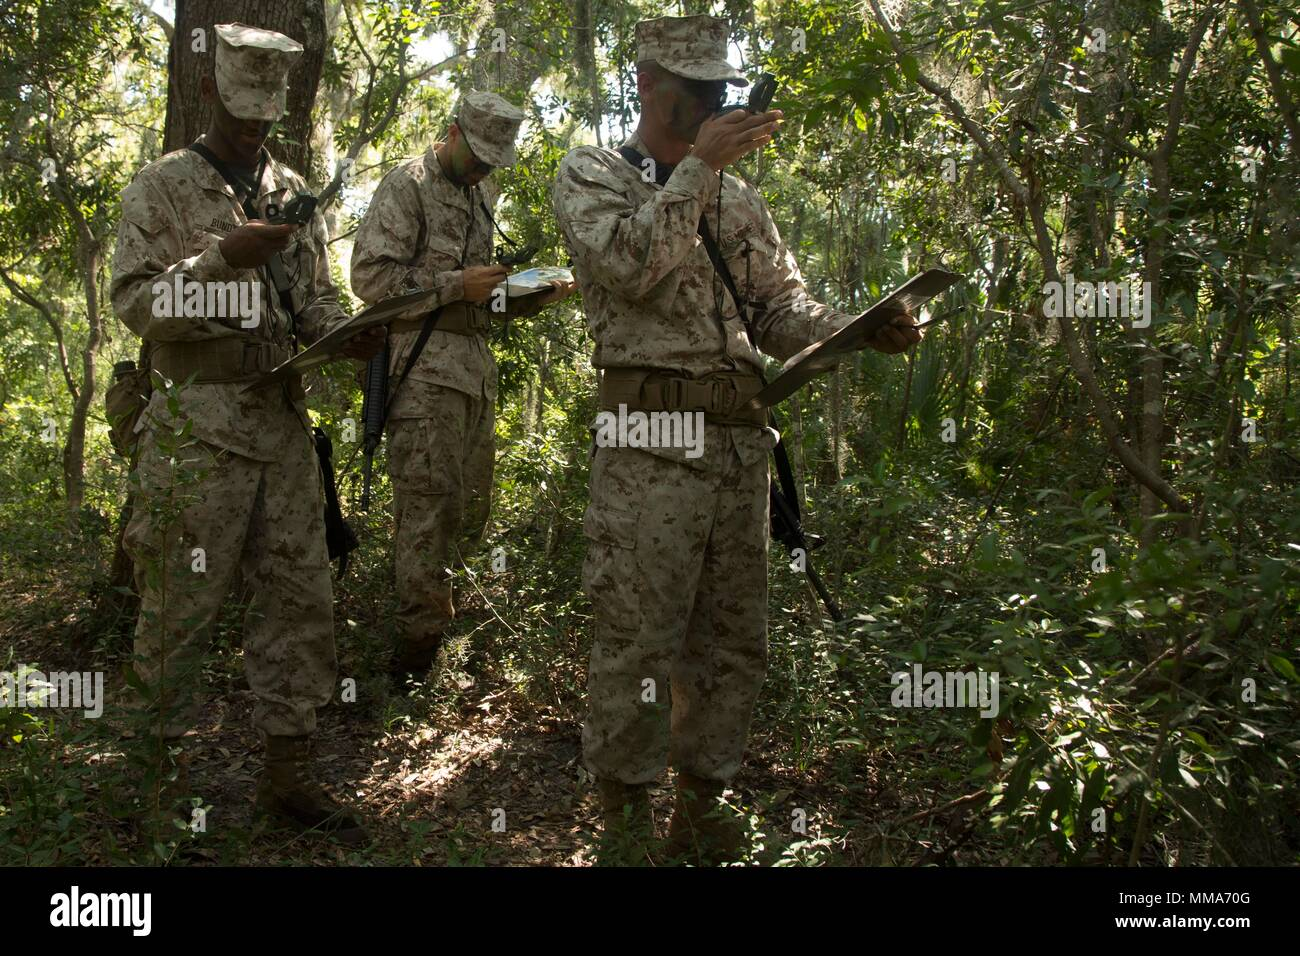 U.S. Marine Corps Recruits with Delta Company, 1st Battalion, Recruit Training Regiment, use compass techniques to reach their next plot point at Elliot's Beach on Marine Corps Recruit Depot, Parris Island, S.C., Sept. 25, 2017.  The Land Navigation Course teaches recruits how to properly navigate unfamiliar terrain.  (U.S. Marine Corps photo by Lance Cpl. Yamil Casarreal/Released) Stock Photo